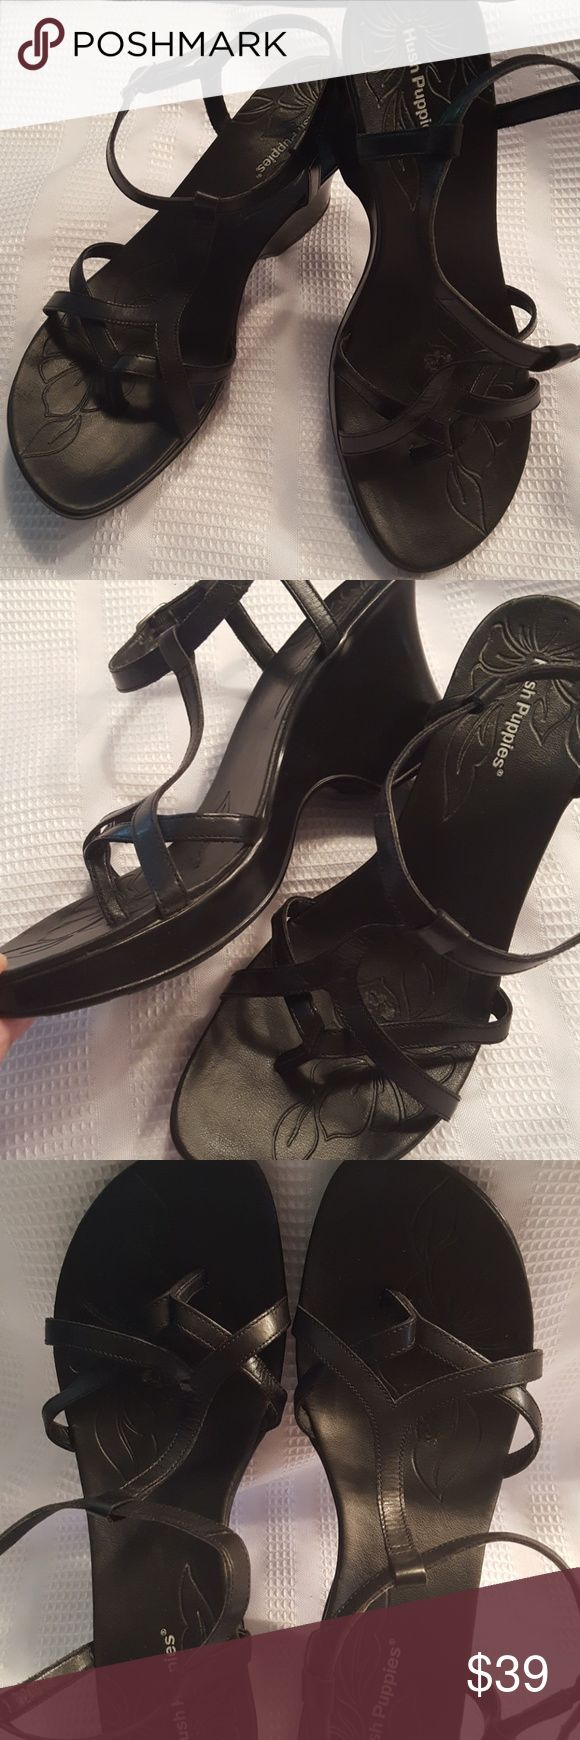 SALE 🔴 Hush Puppies Black Strappy Sandals Gently worn and very comfortable! SZ  9.5 black Strappy buckle sandals from Hush Puppies. EUC. Hush Puppies Shoes Sandals